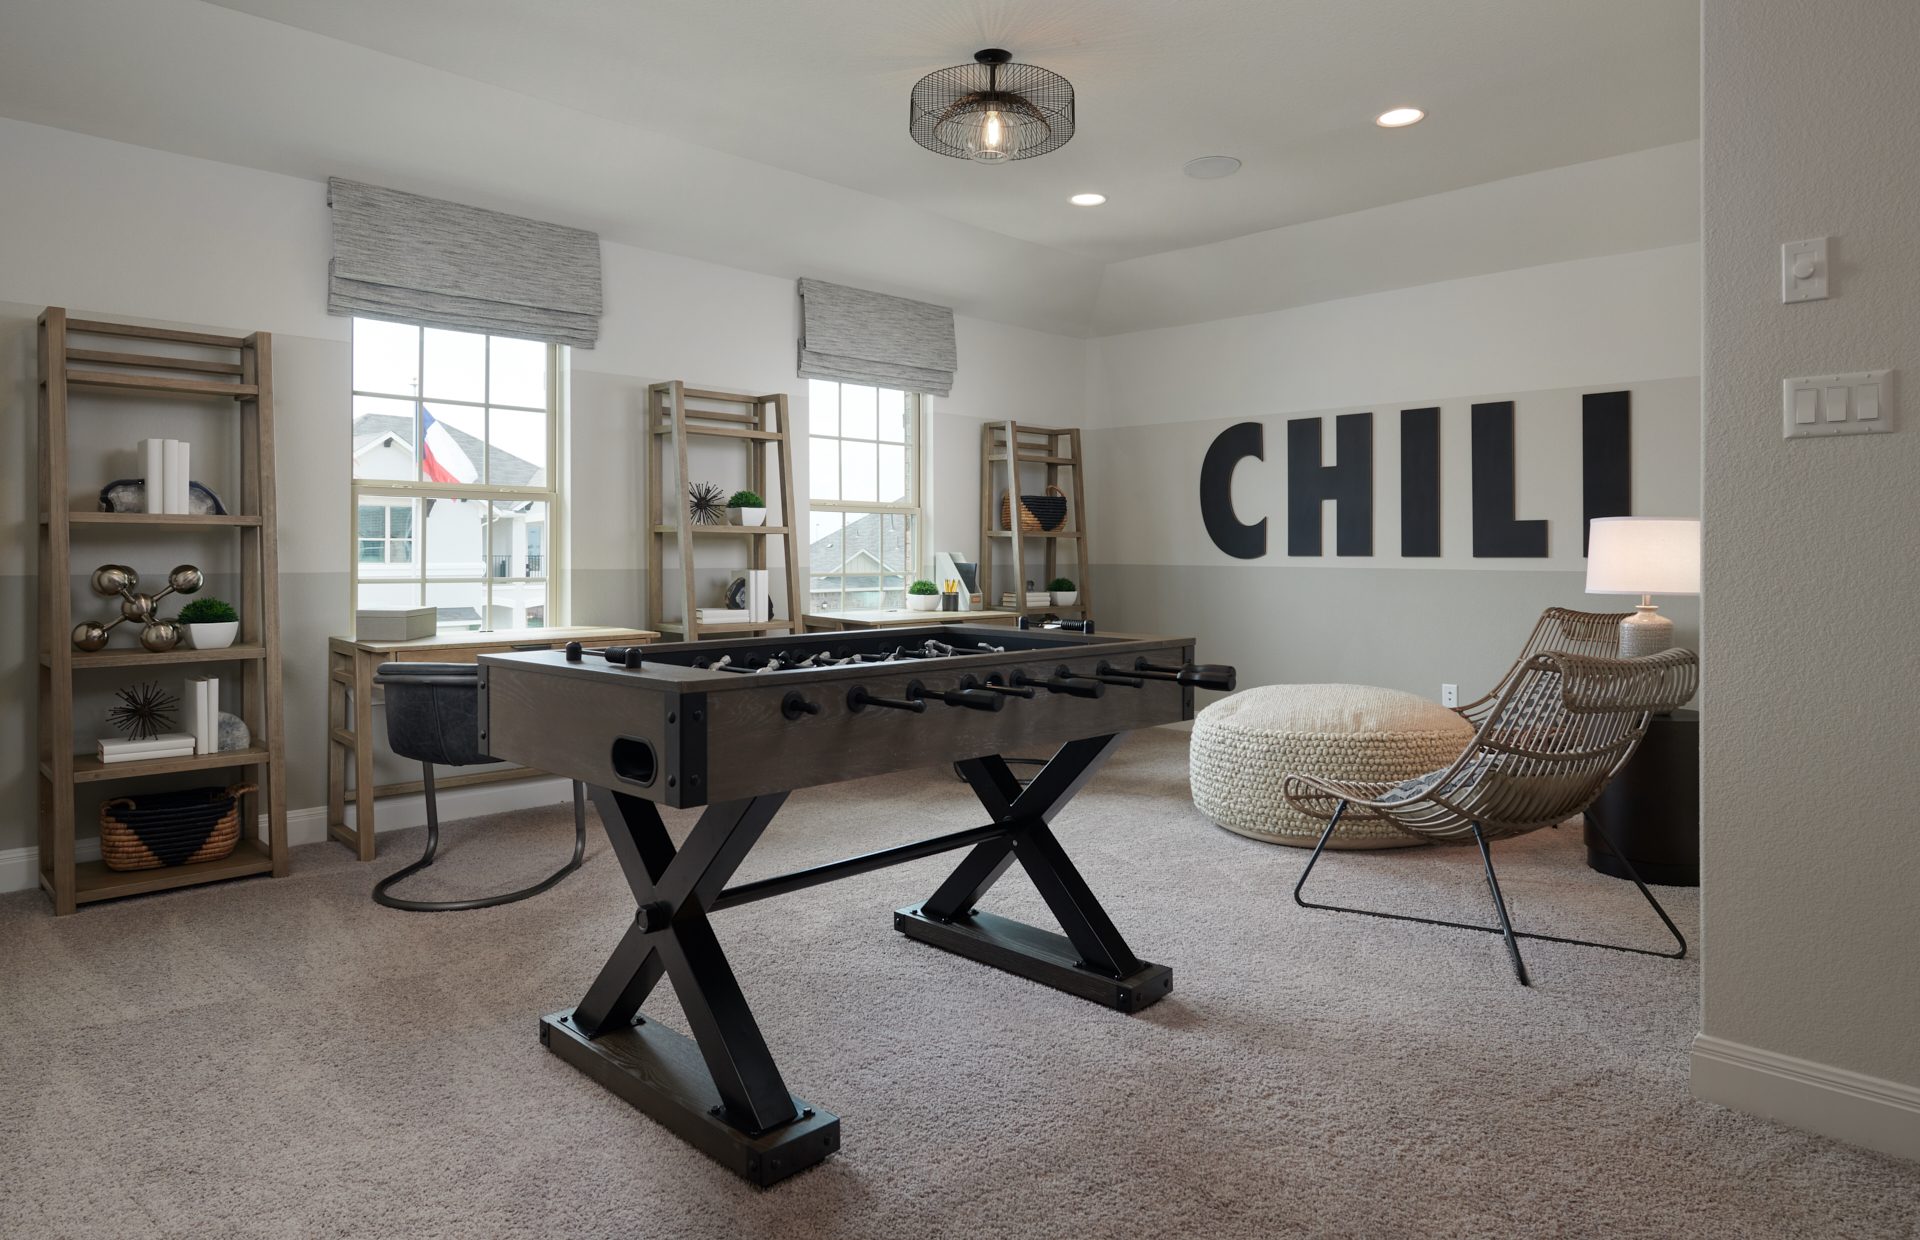 Carmel by Pulte Homes image 4